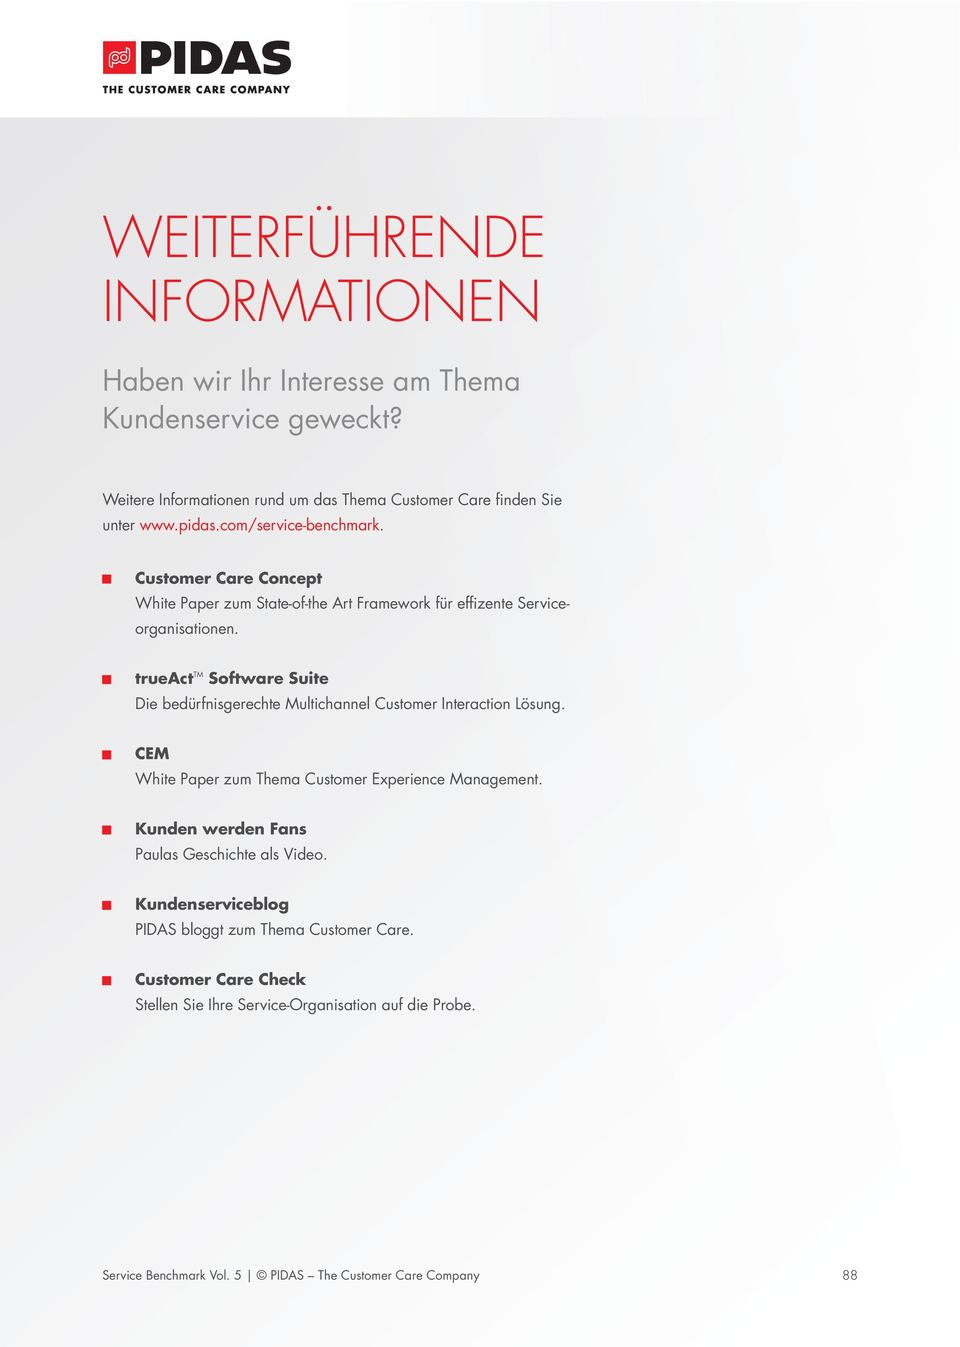 trueact TM Software Suite Die bedürfnisgerechte Multichannel Customer Interaction Lösung. CEM White Paper zum Thema Customer Experience Management.